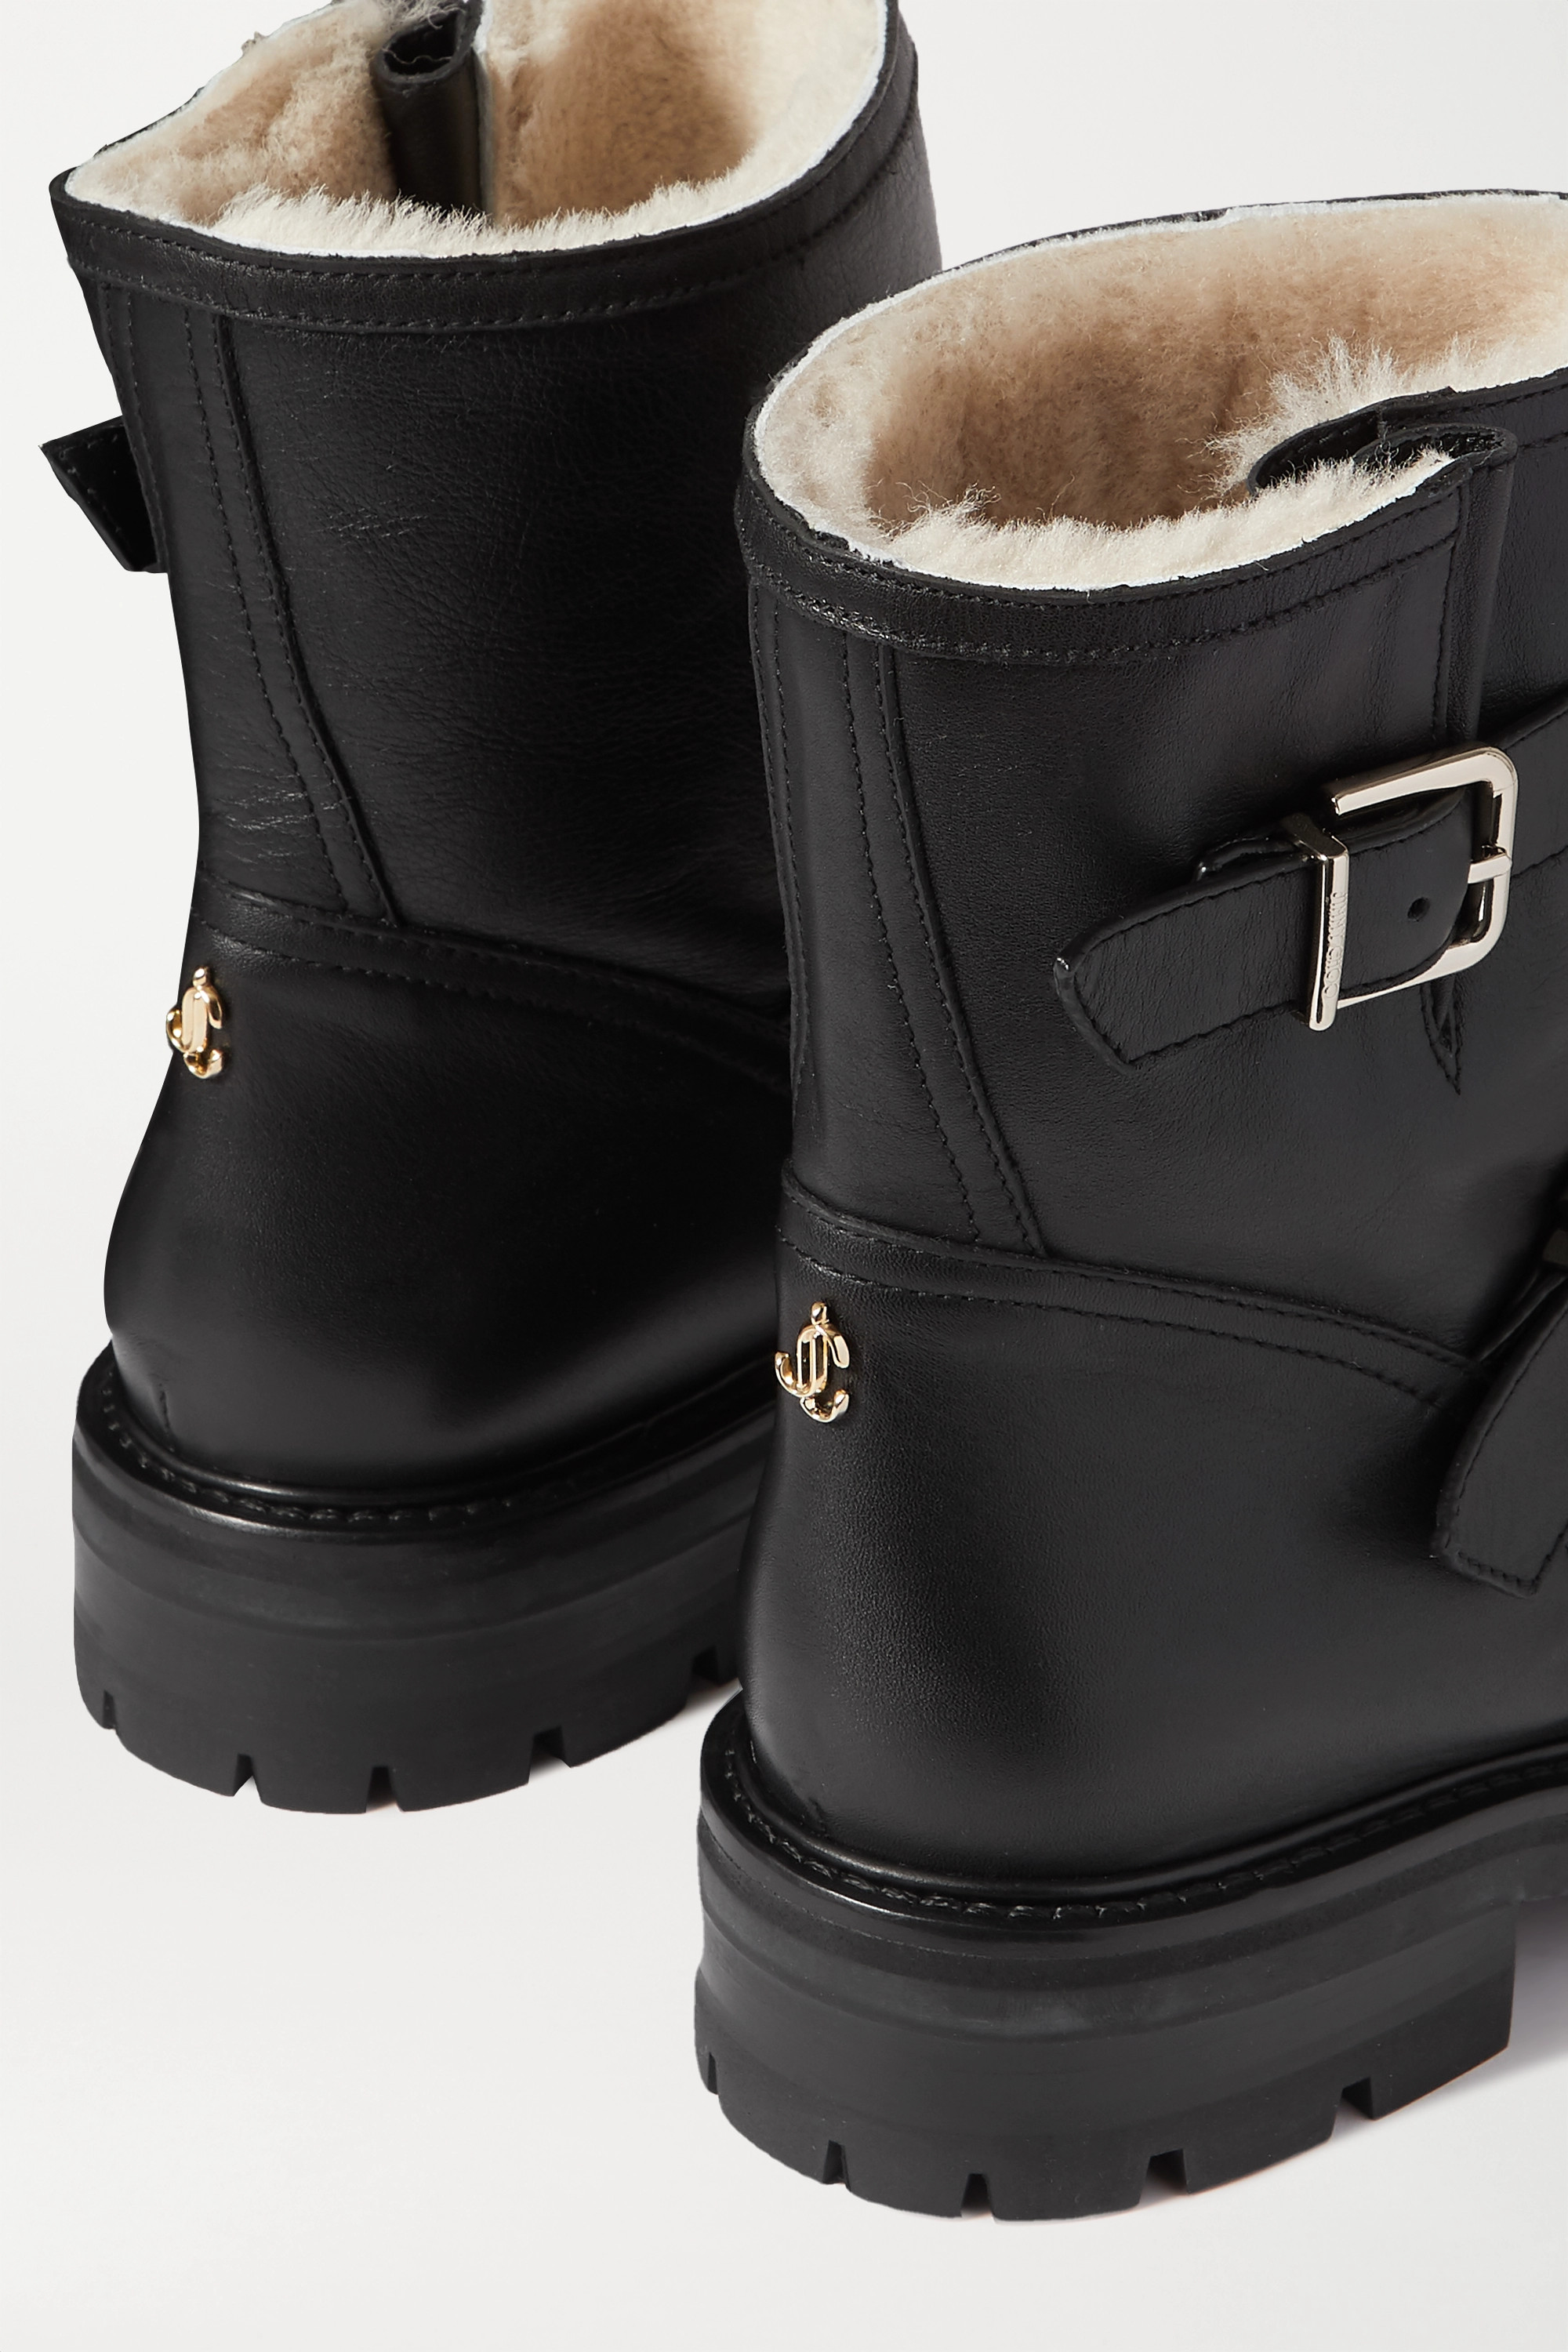 Jimmy Choo Youth II buckled shearling-lined leather ankle boots